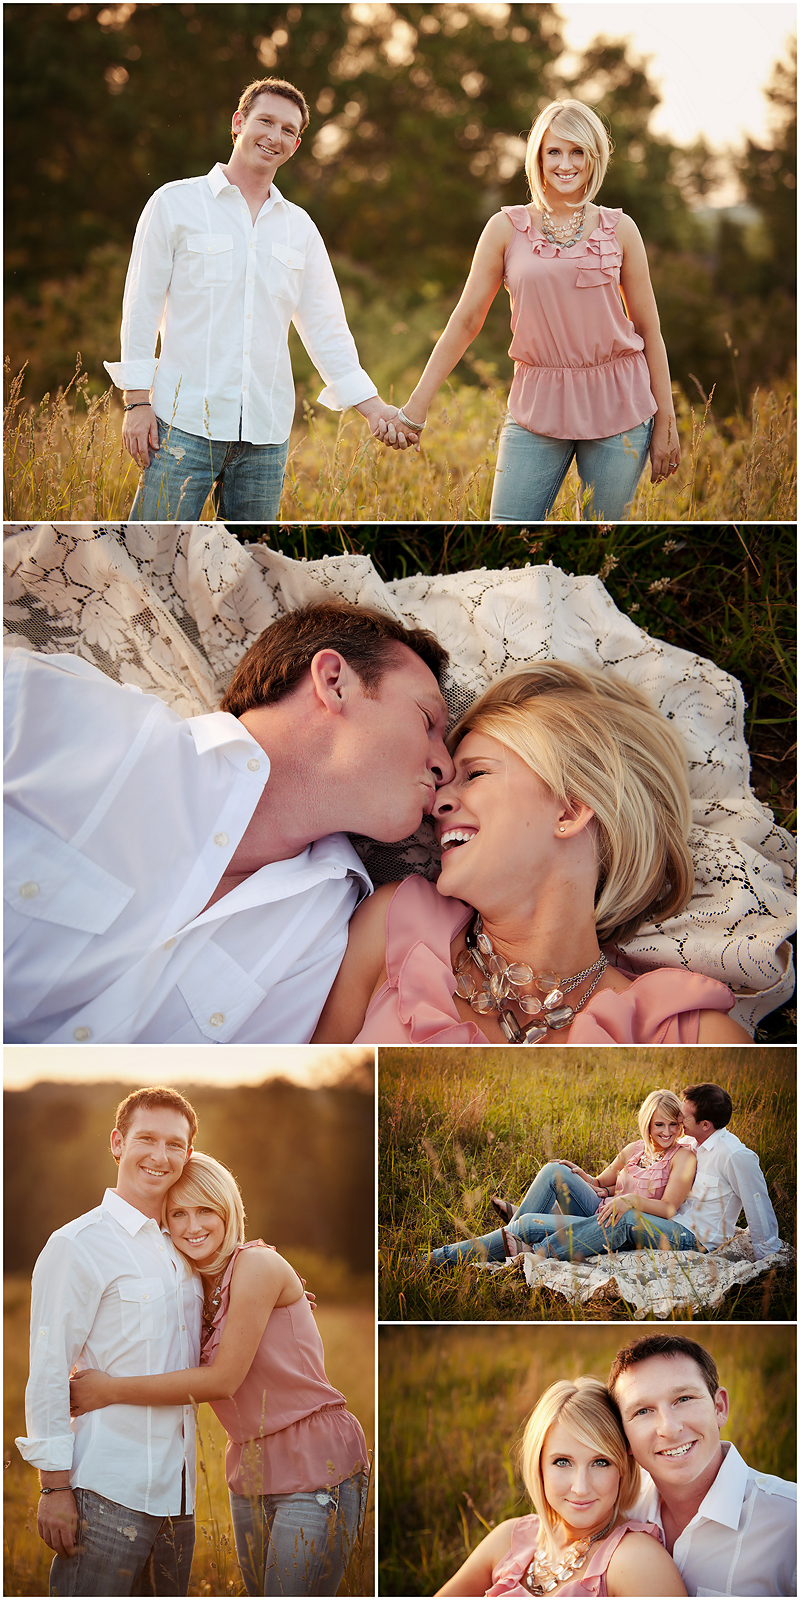 Jess and Jason Engagement Images web Alpharetta, GA | BerryTree Photography | Wedding Photographer :  Jessica and Jason!